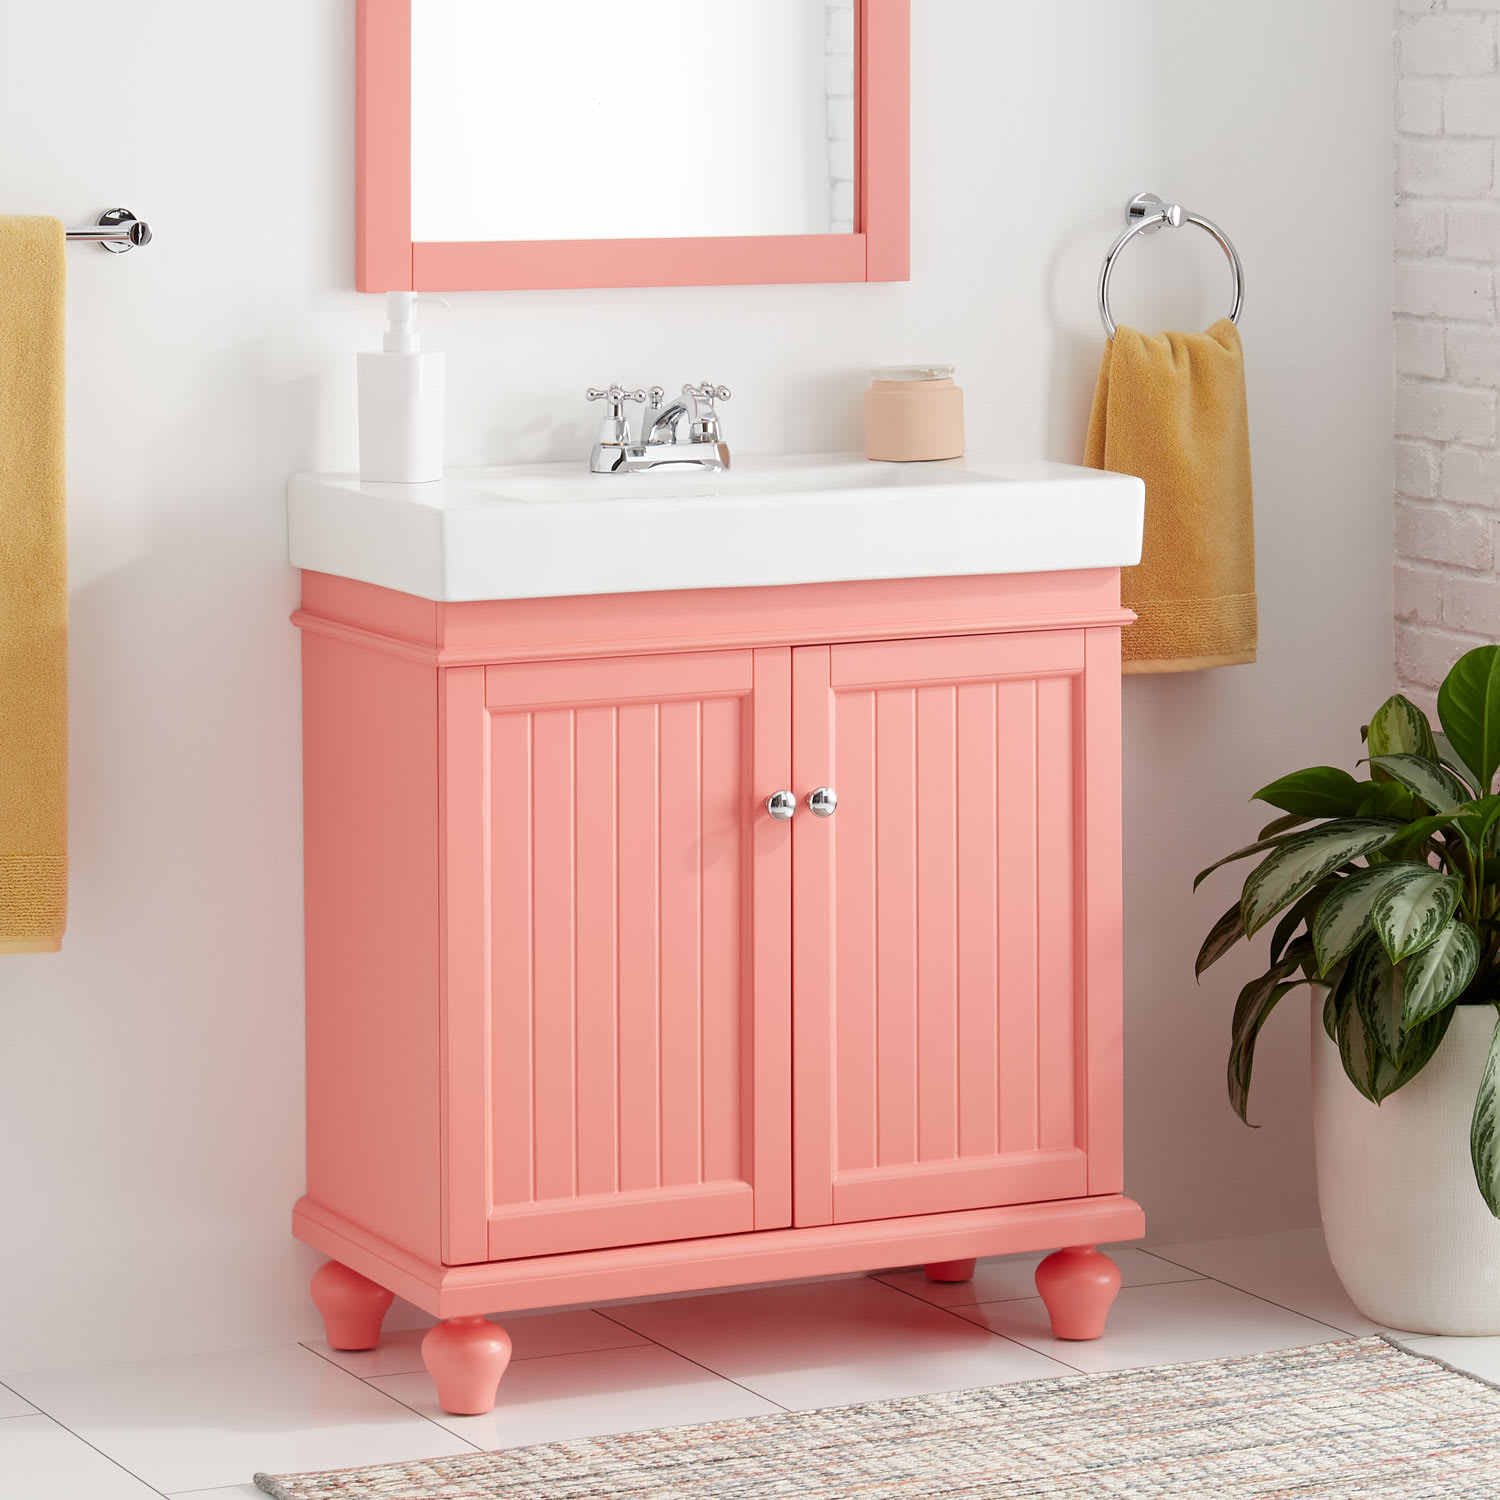 Signature Hardware 446771 Coral Lander 30 Single Vanity Set With Solid Wood Cabinet And Porcelain Vanity Top With Rectangular Integrated Porcelain Sink 4 Faucet Holes Faucet Com